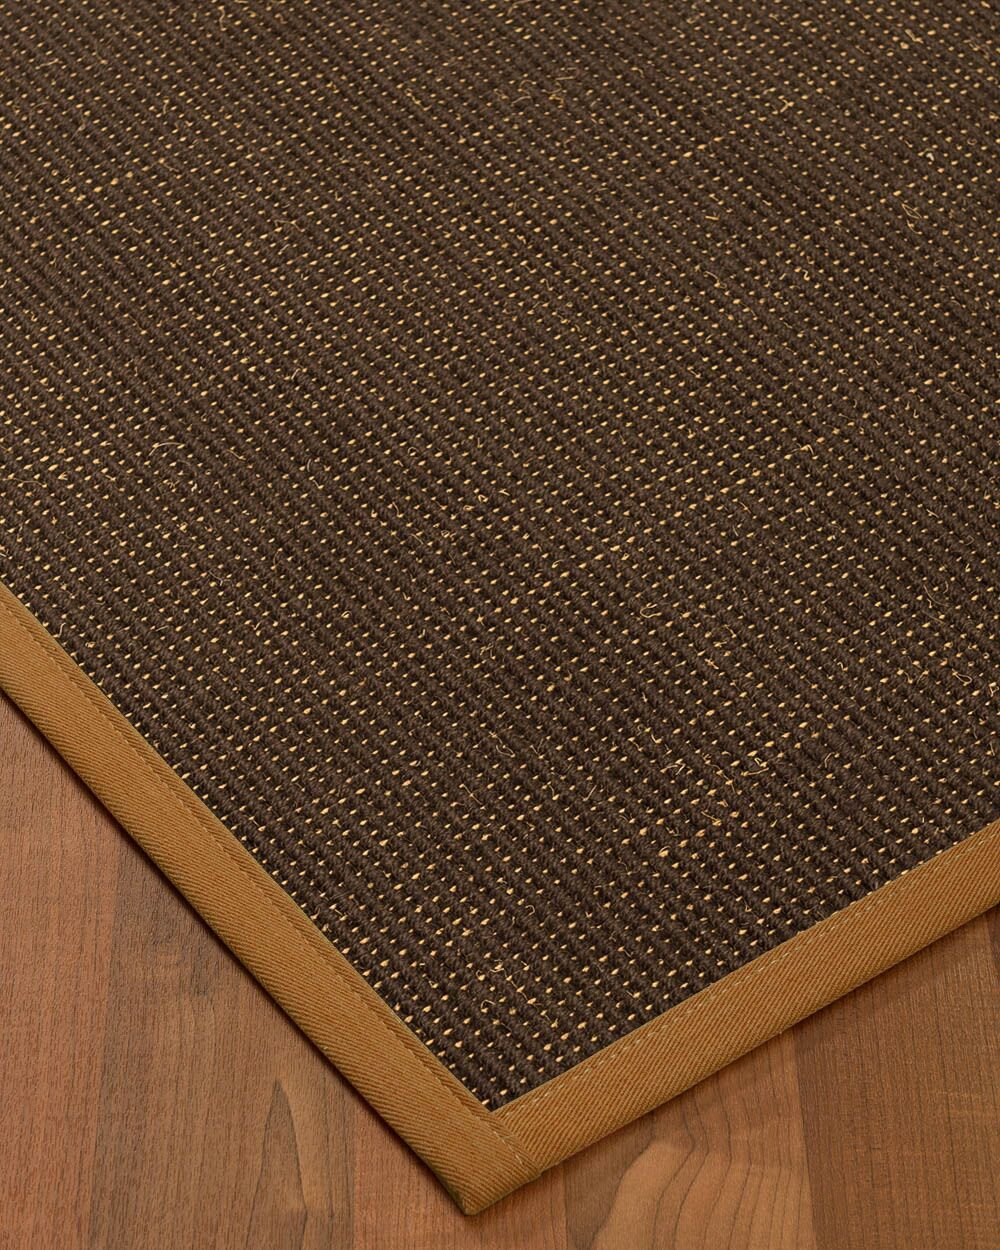 Kersh Border Hand-Woven Brown/Sienna Area Rug Rug Size: Rectangle 4' x 6', Rug Pad Included: Yes